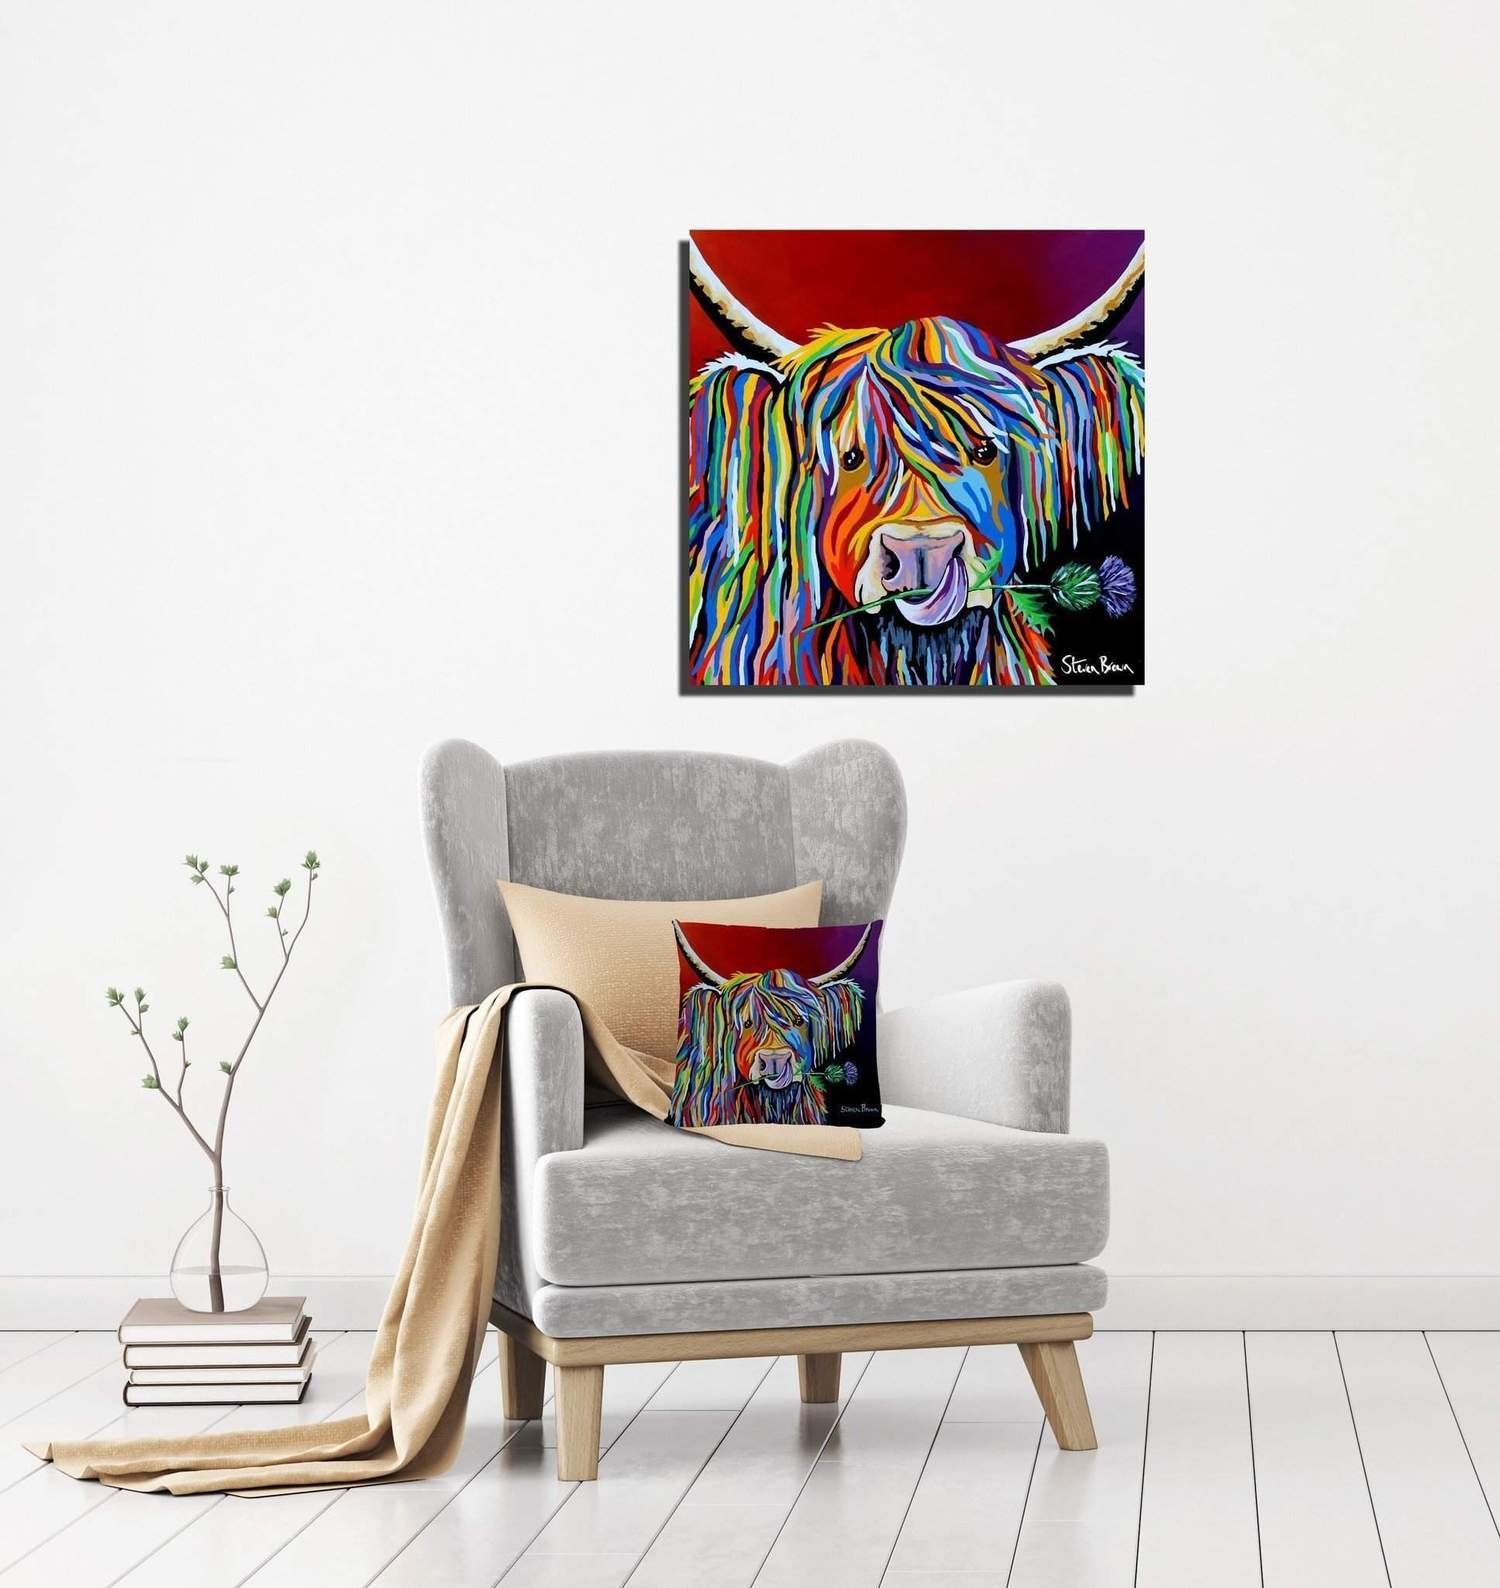 Lizzie McCoo 16x16 stretched canvas (Steven Brown Art)